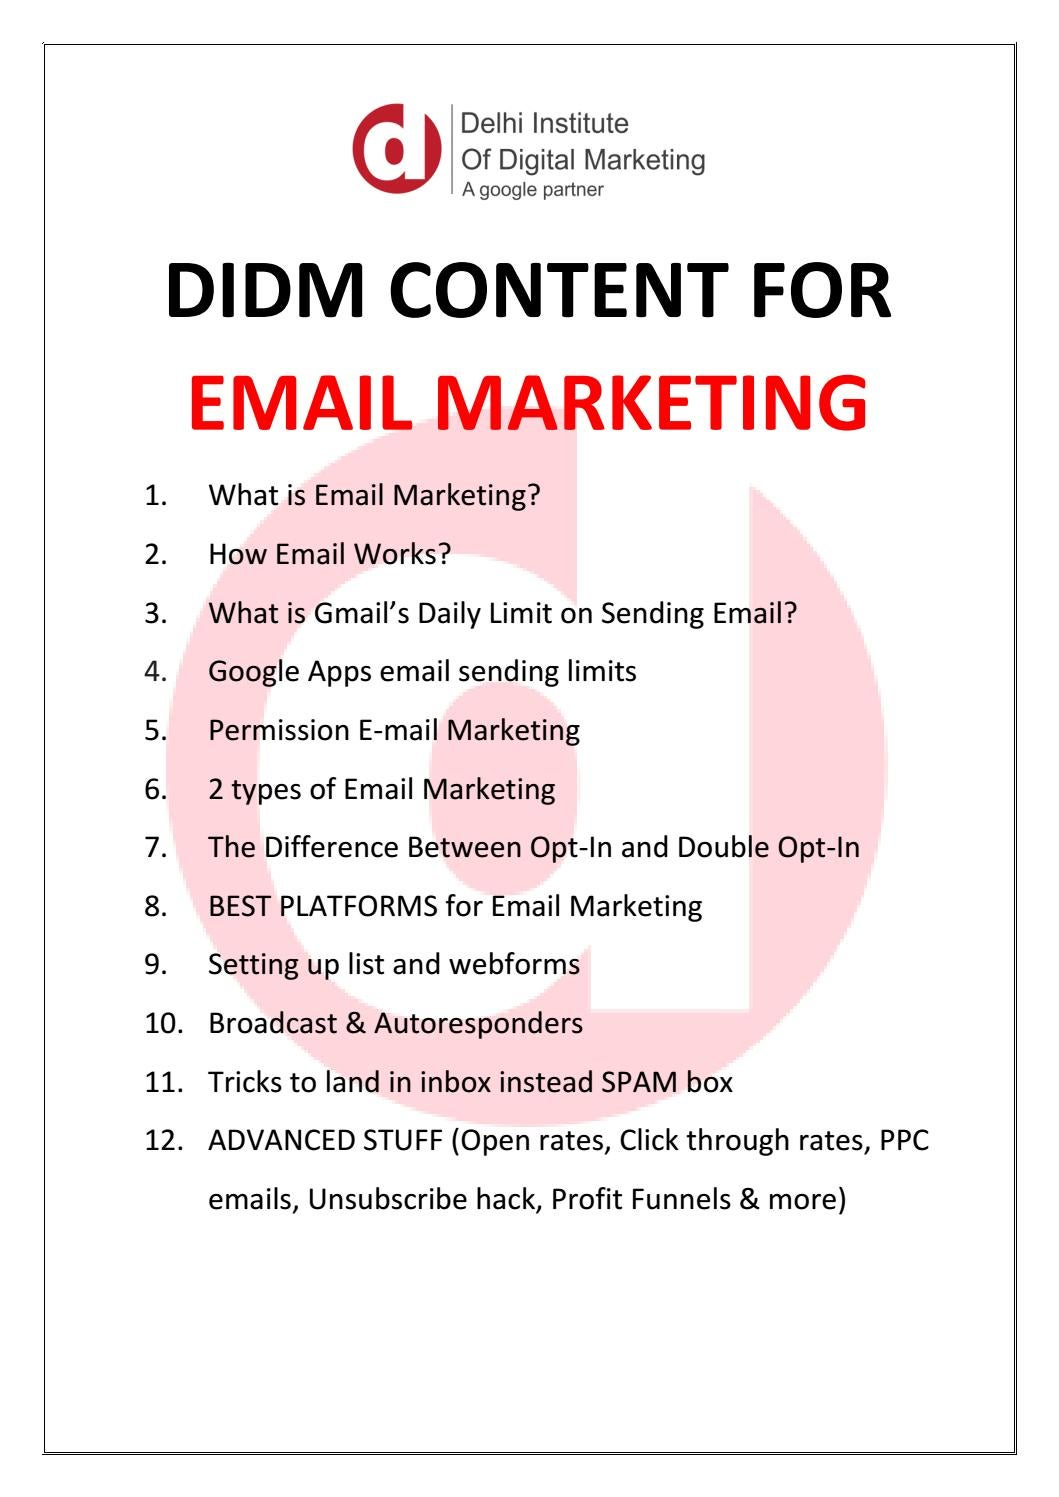 email account list our students classs by Sachin Kumar - issuu